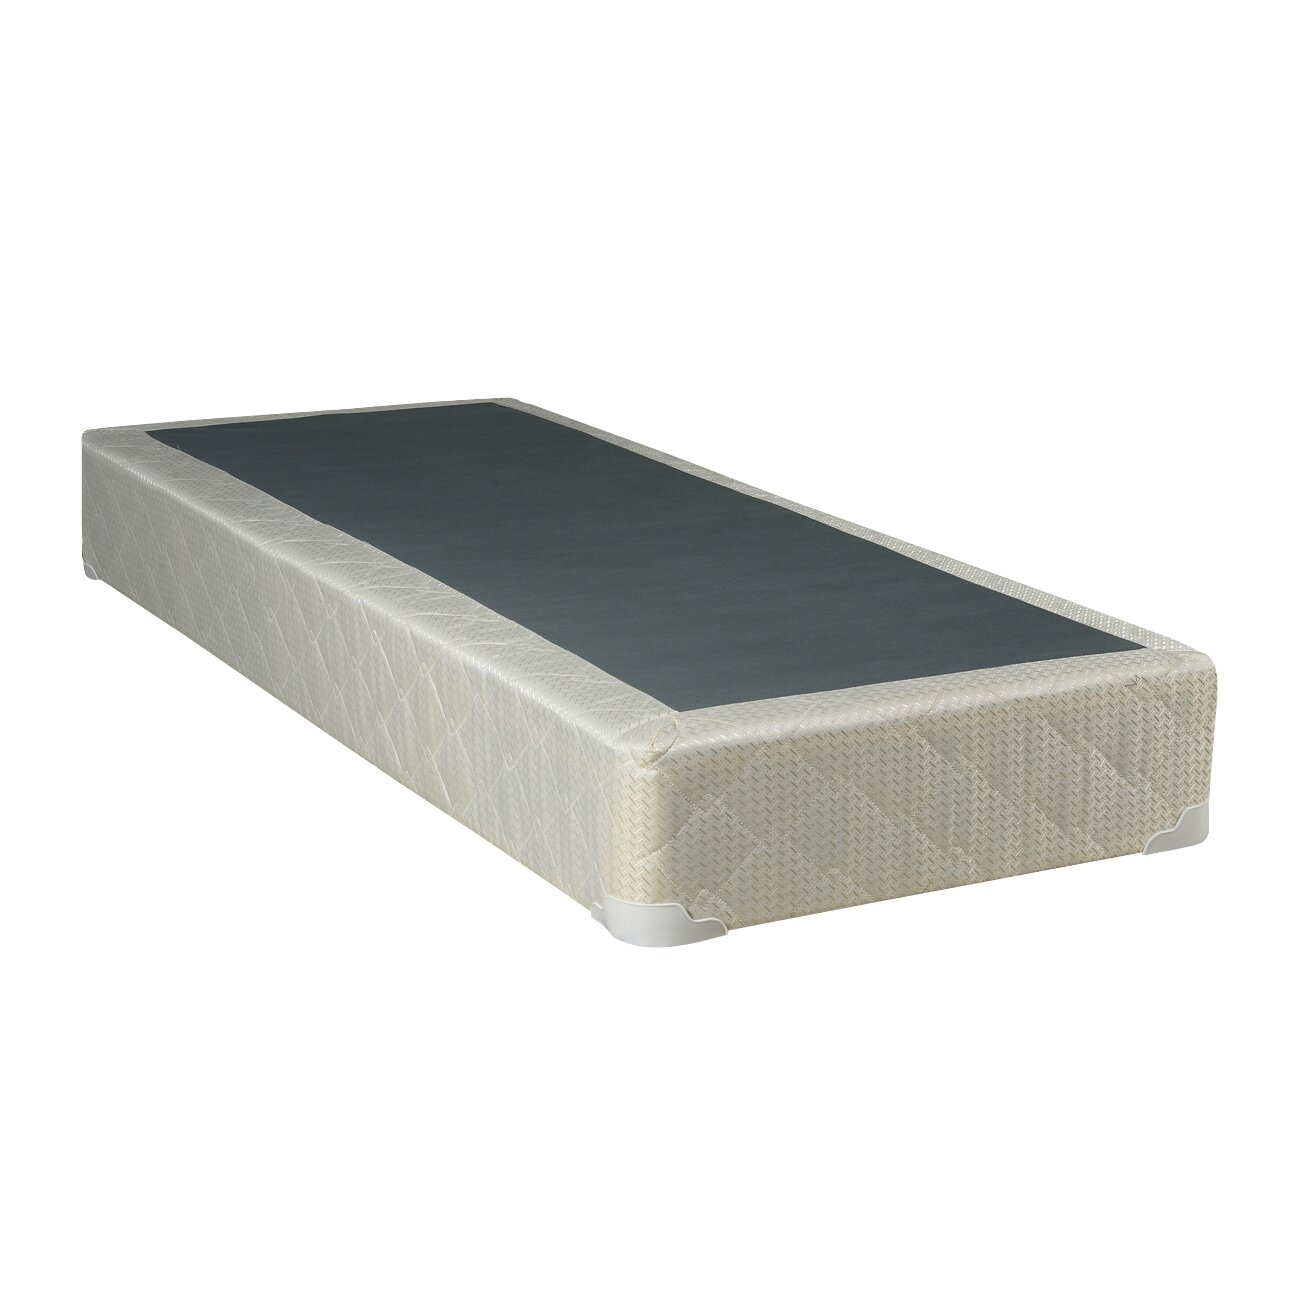 Twin bed mattress and box spring extra long twin bed for How long does a spring mattress last